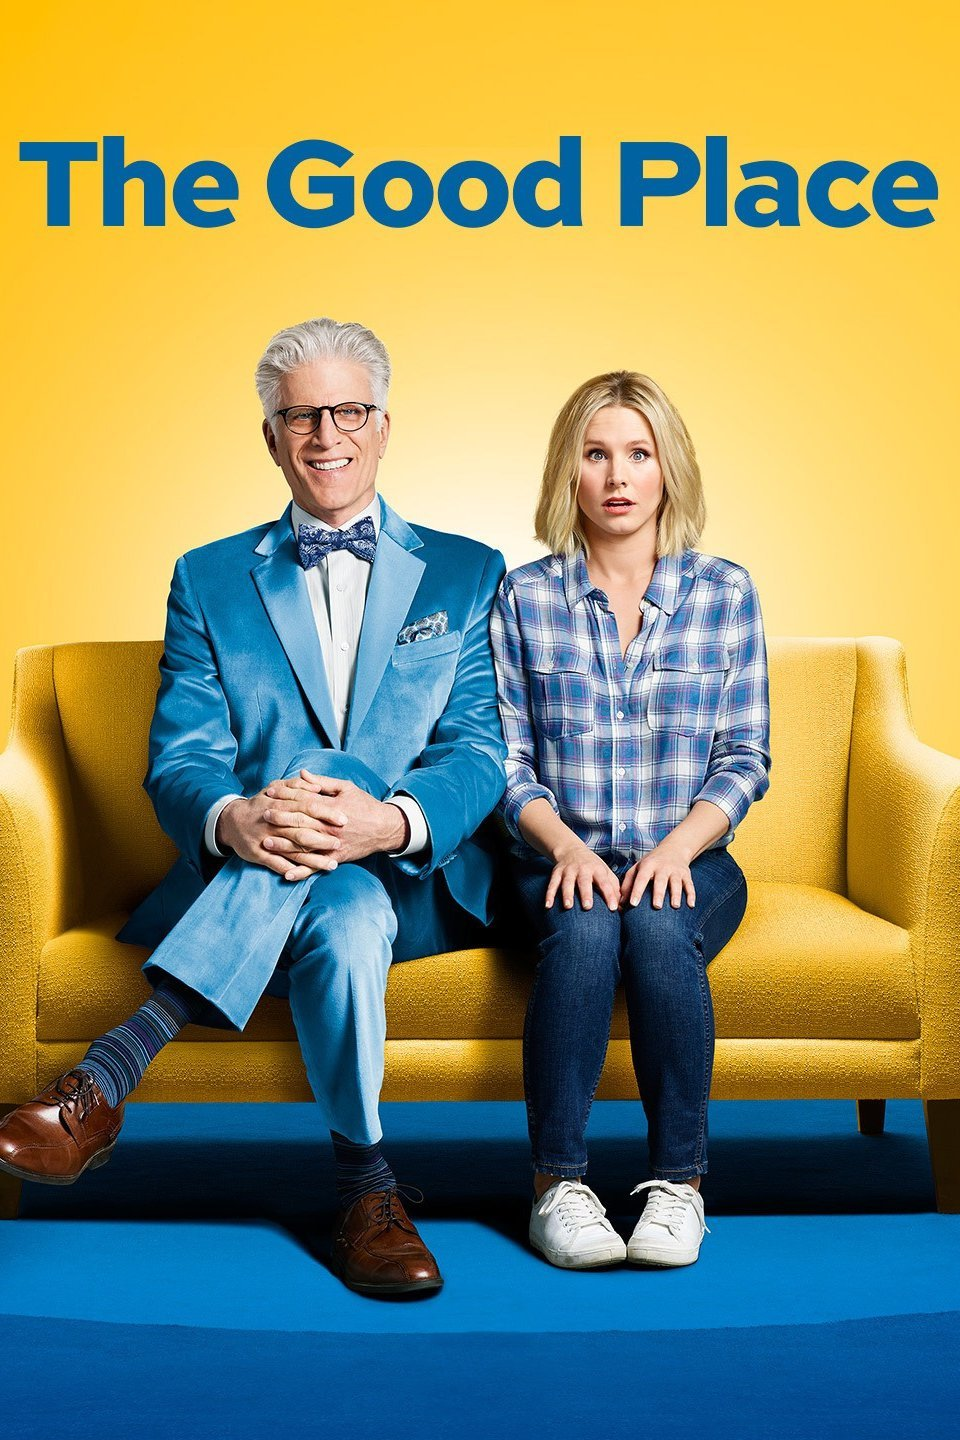 The Good Place Season 2 Episode 5 Download HDTV